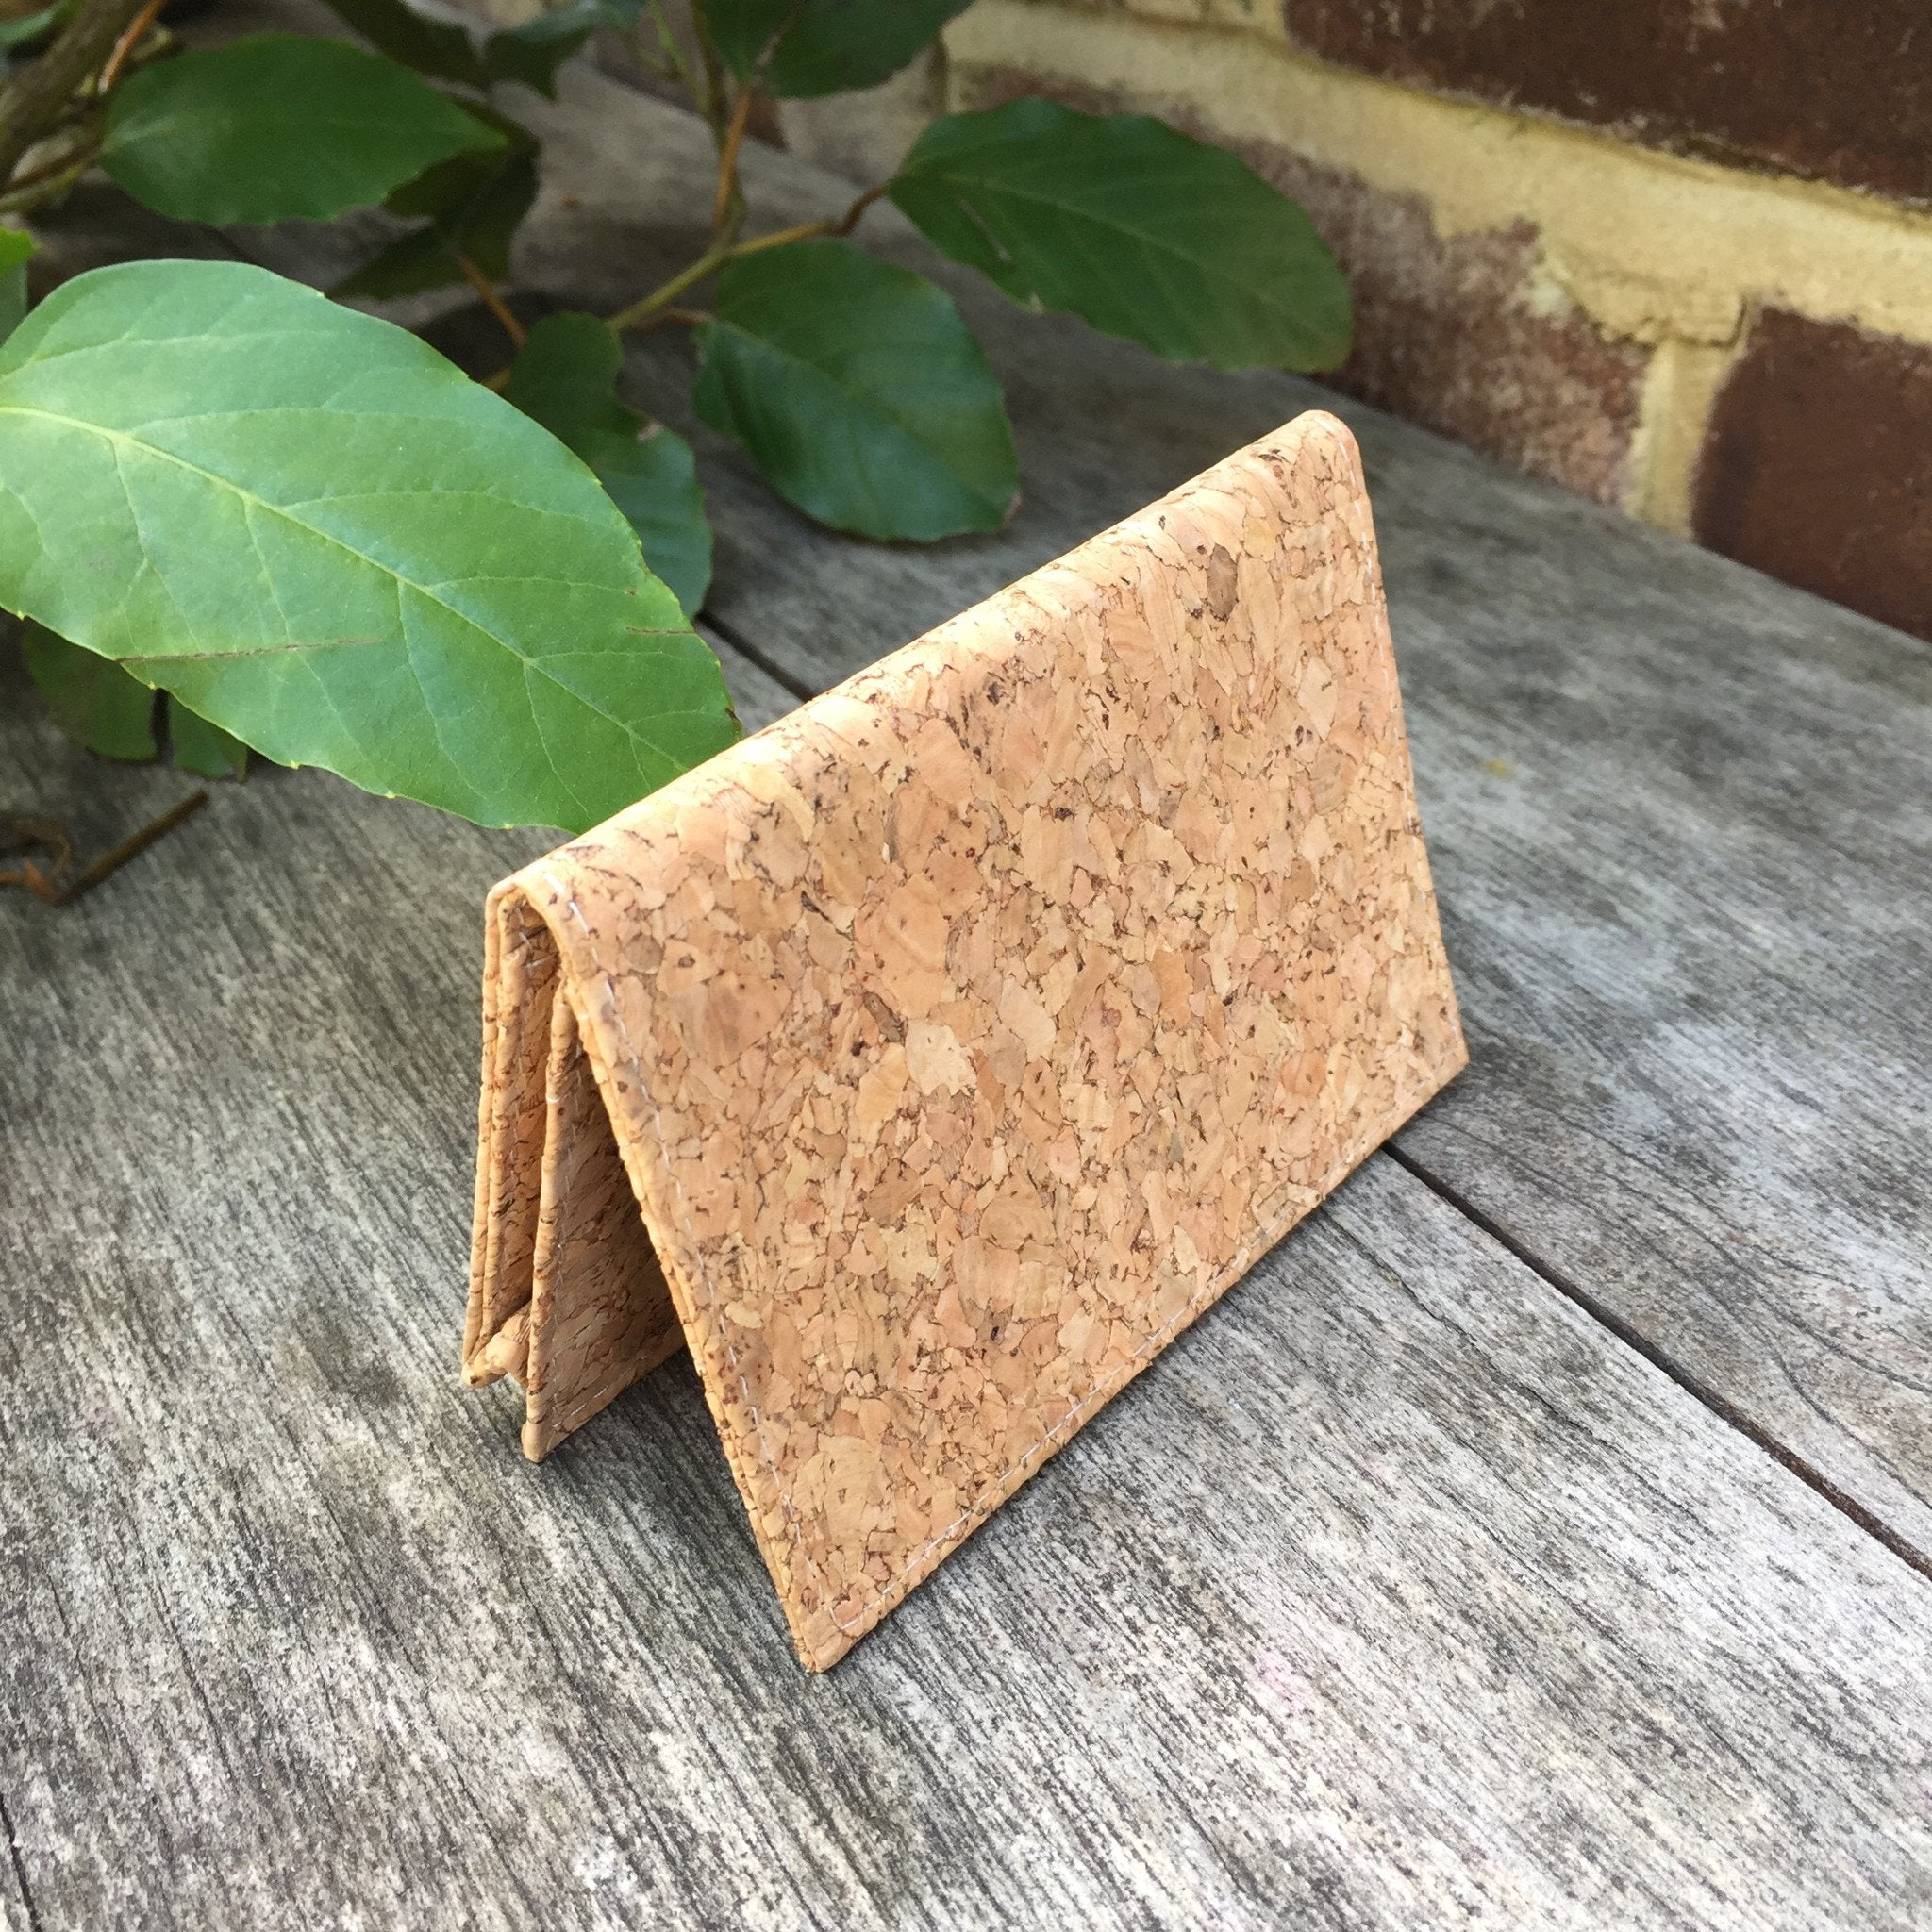 Plain Classic Kevin Cork Wallet Card Holder Natural Cruelty Free Ethical Vegan Recycled